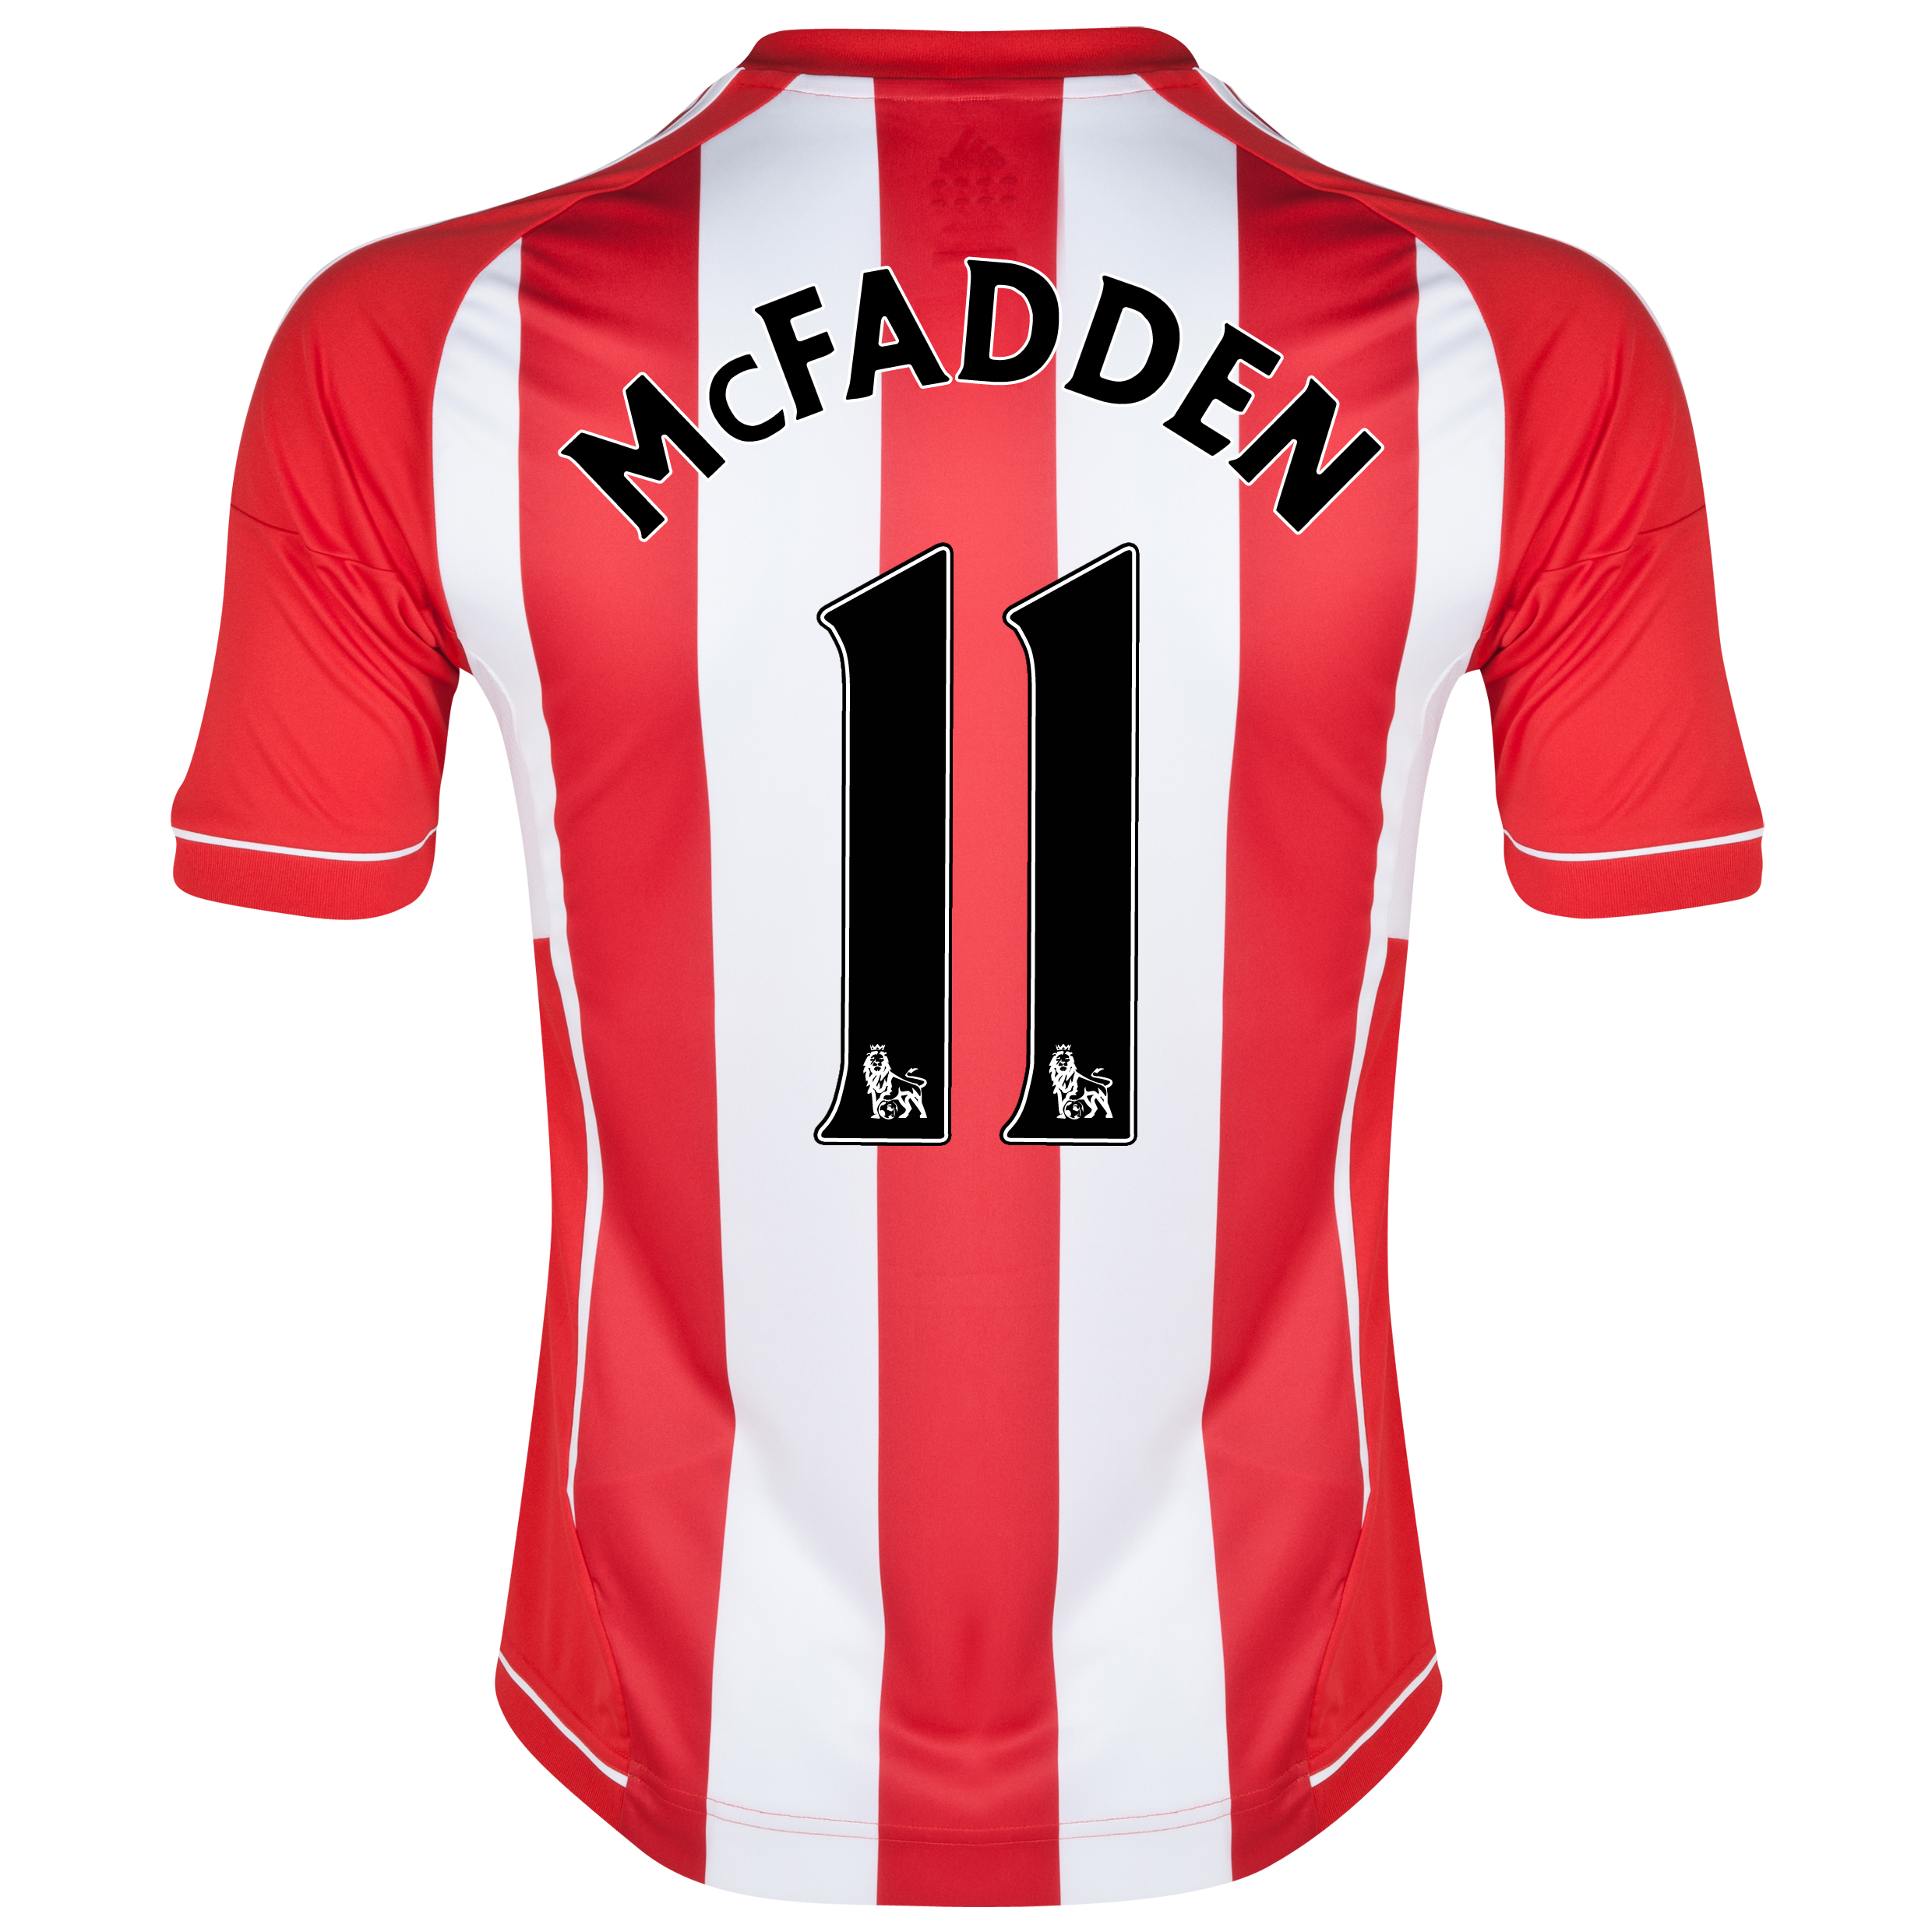 Sunderland Home Shirt 2012/13 - Junior with McFadden 11 printing